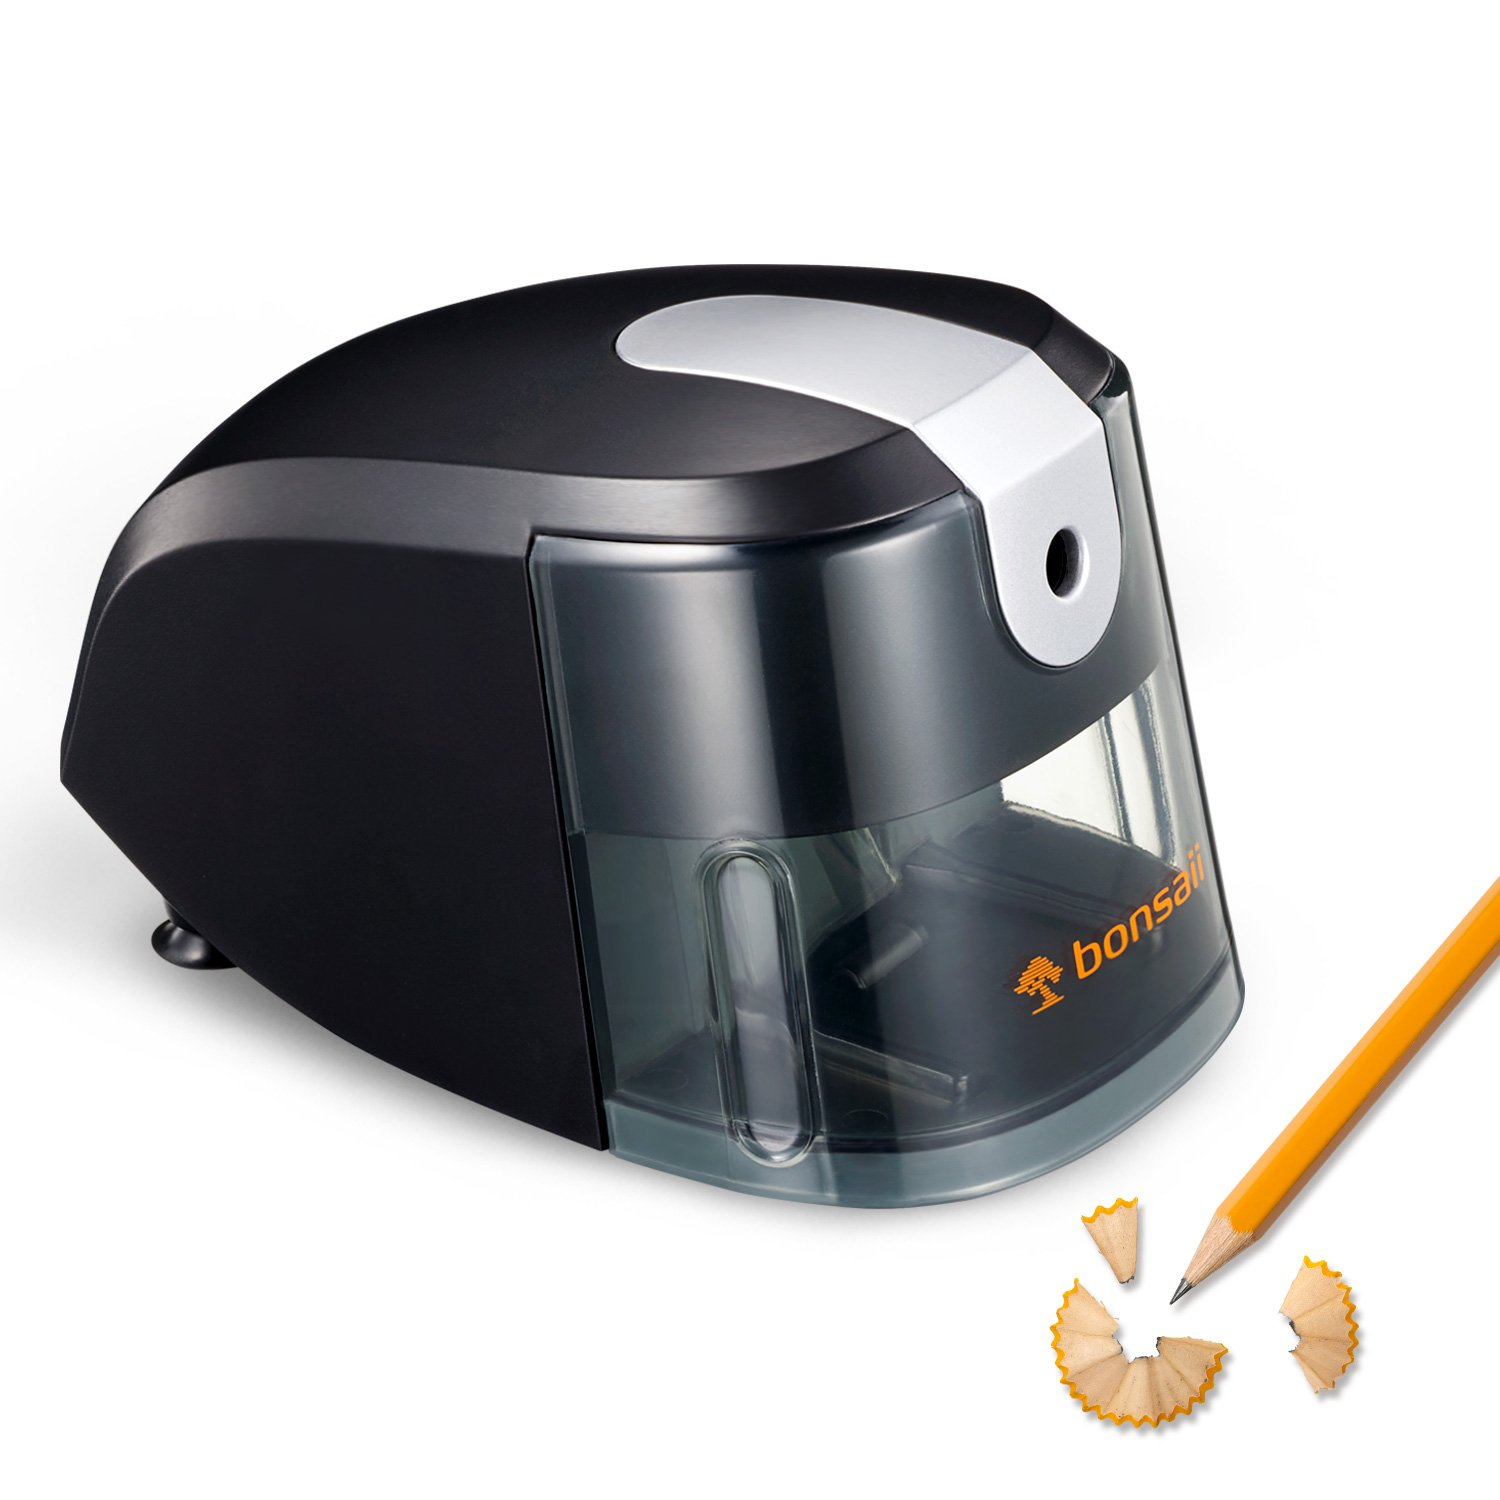 Bonsaii Electric Pencil Sharpener, Heavy Duty Helical Blade, Ideal for School,Home and Office, Black (P111-A)